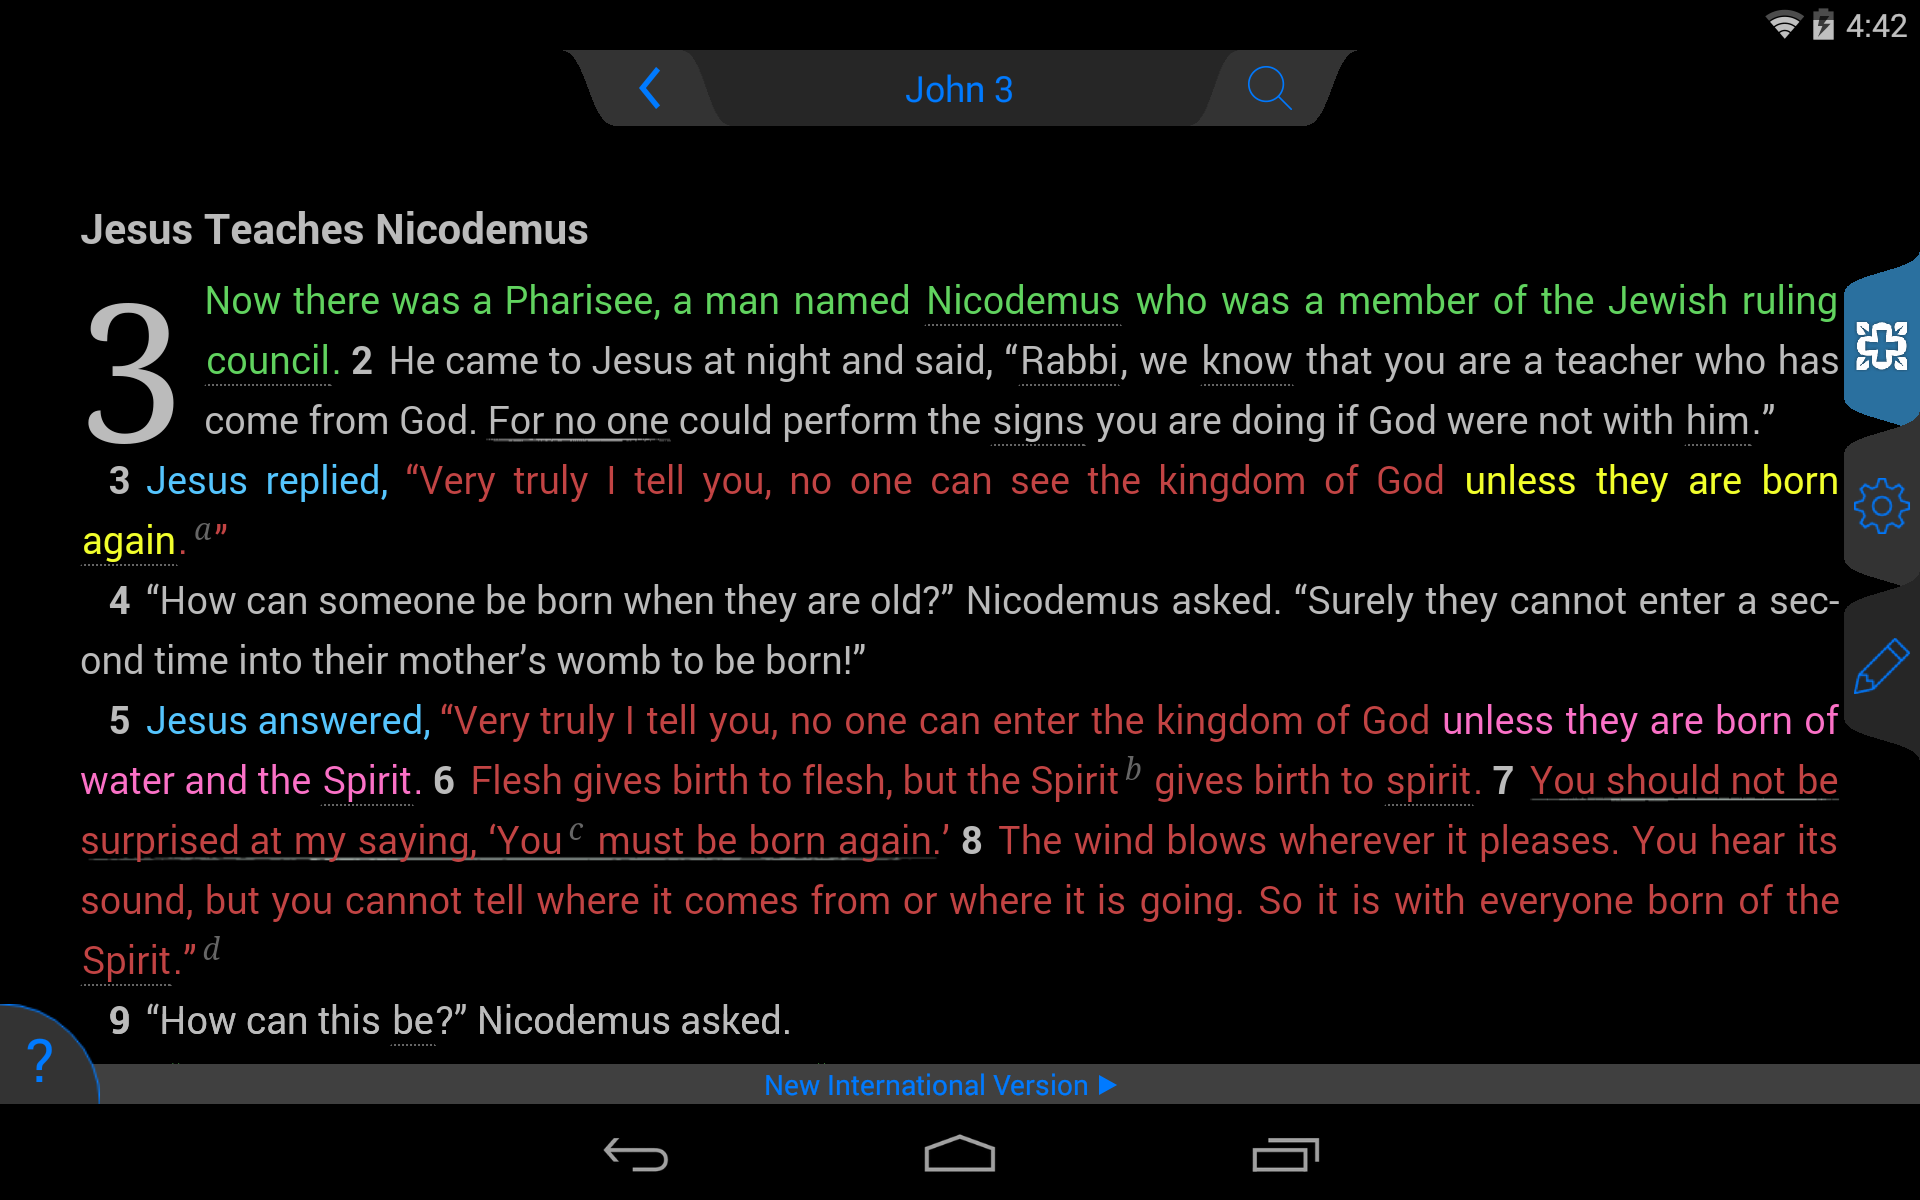 NIV Study Bible screenshot #22